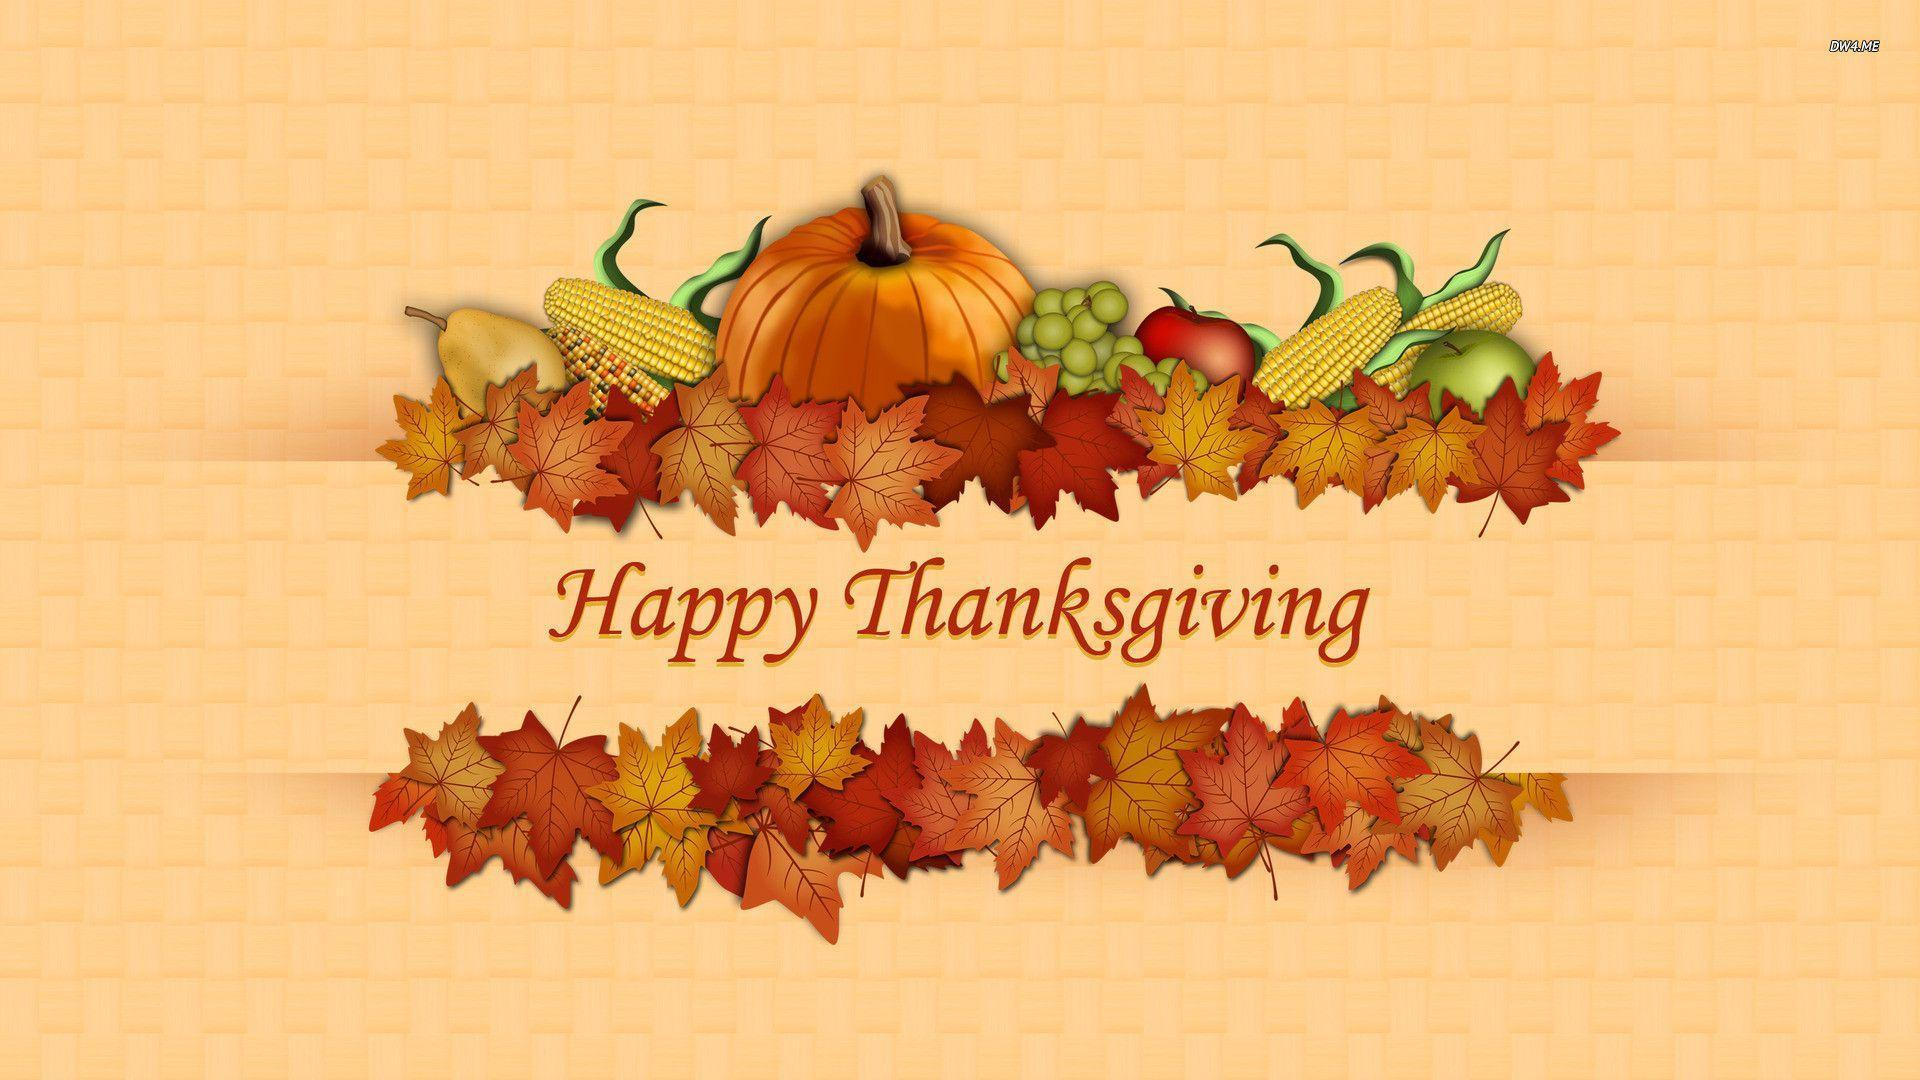 pixel wallpaper thanksgiving free - photo #15